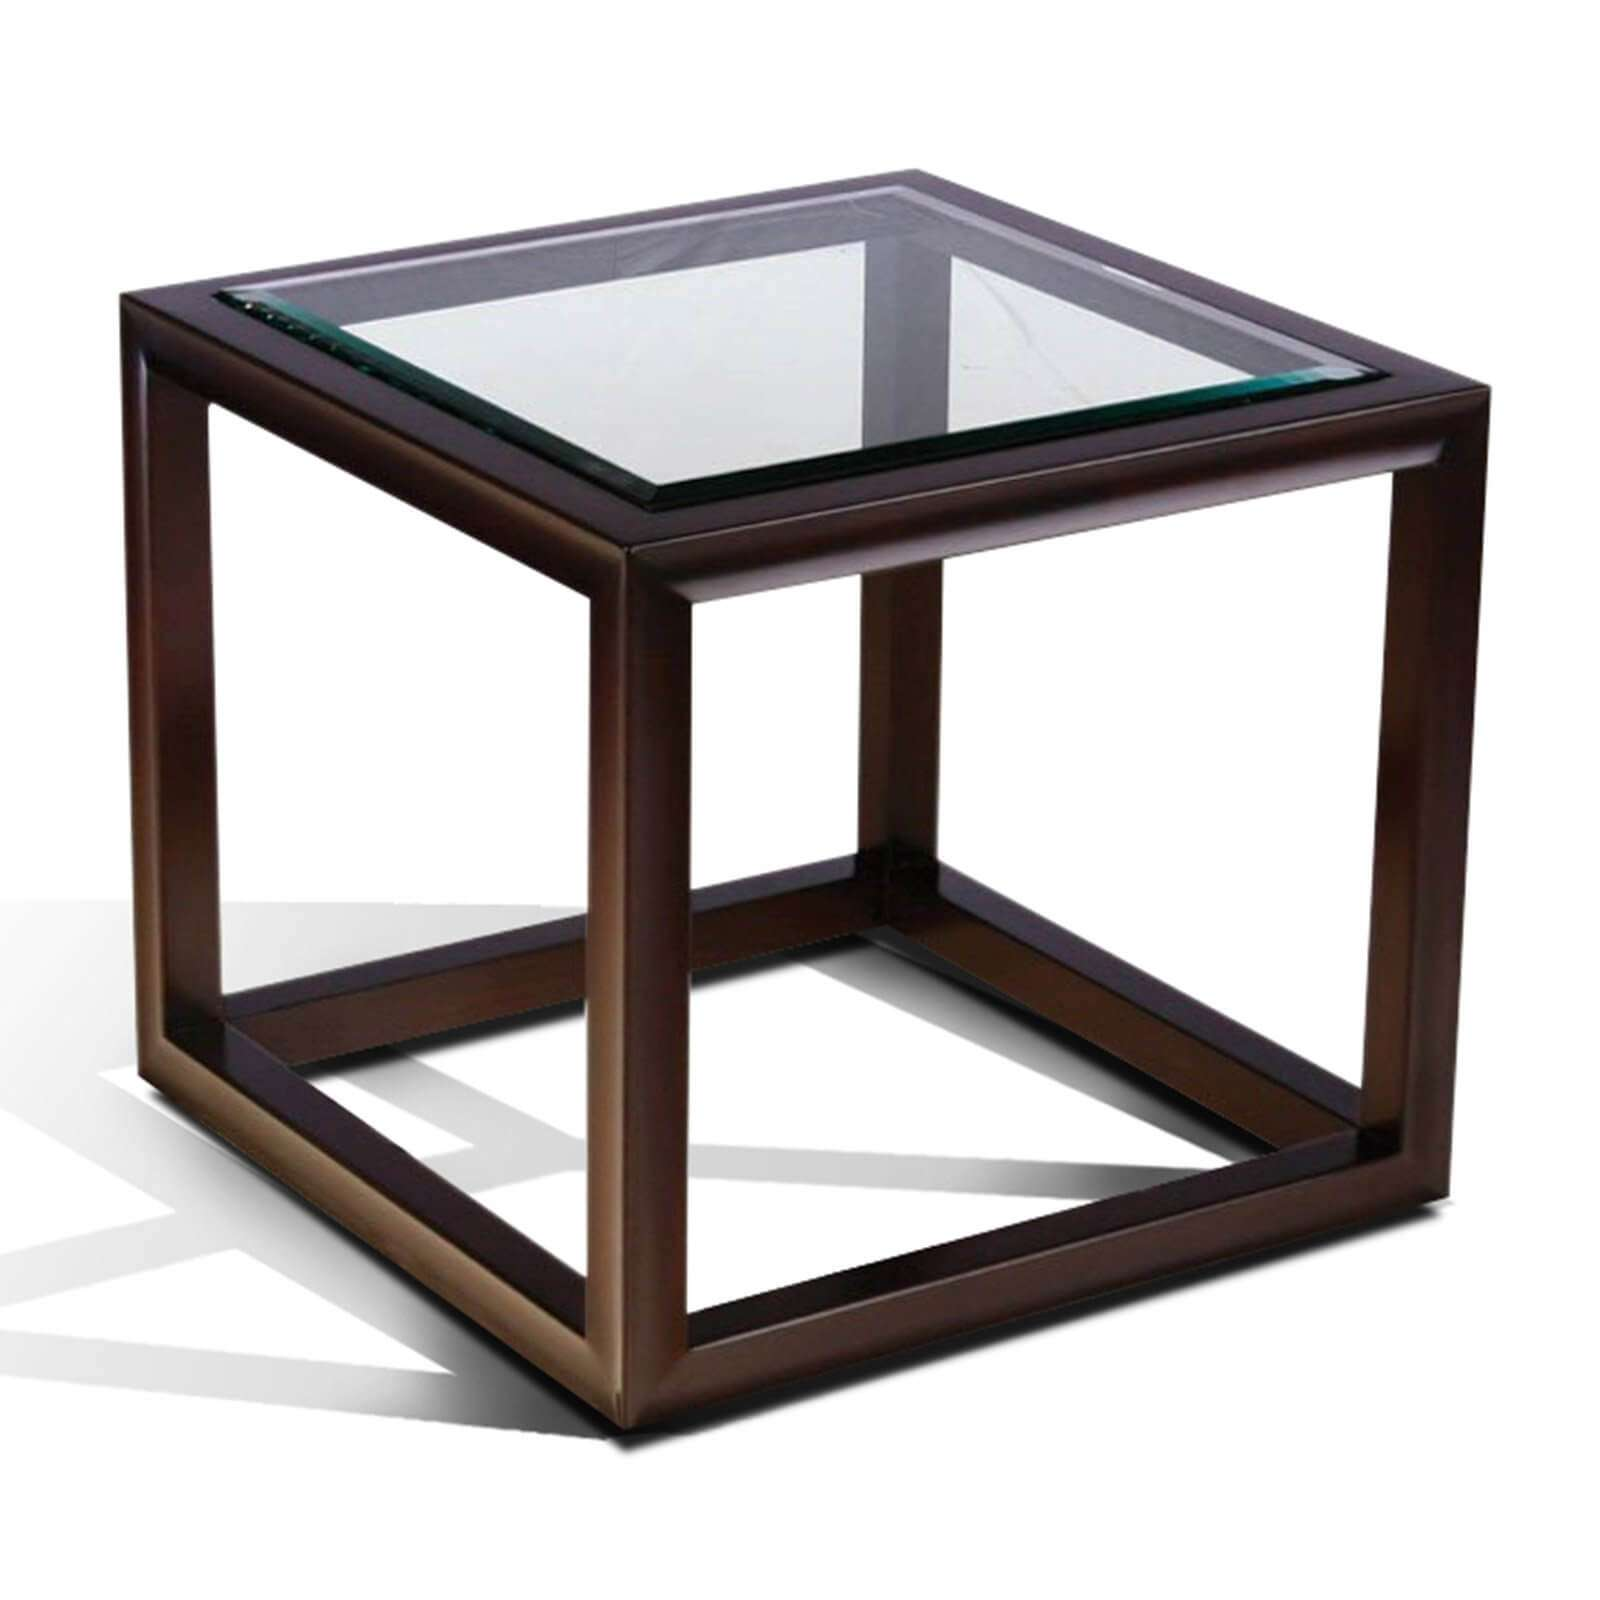 FIFTH AVE SQUARE END TABLE